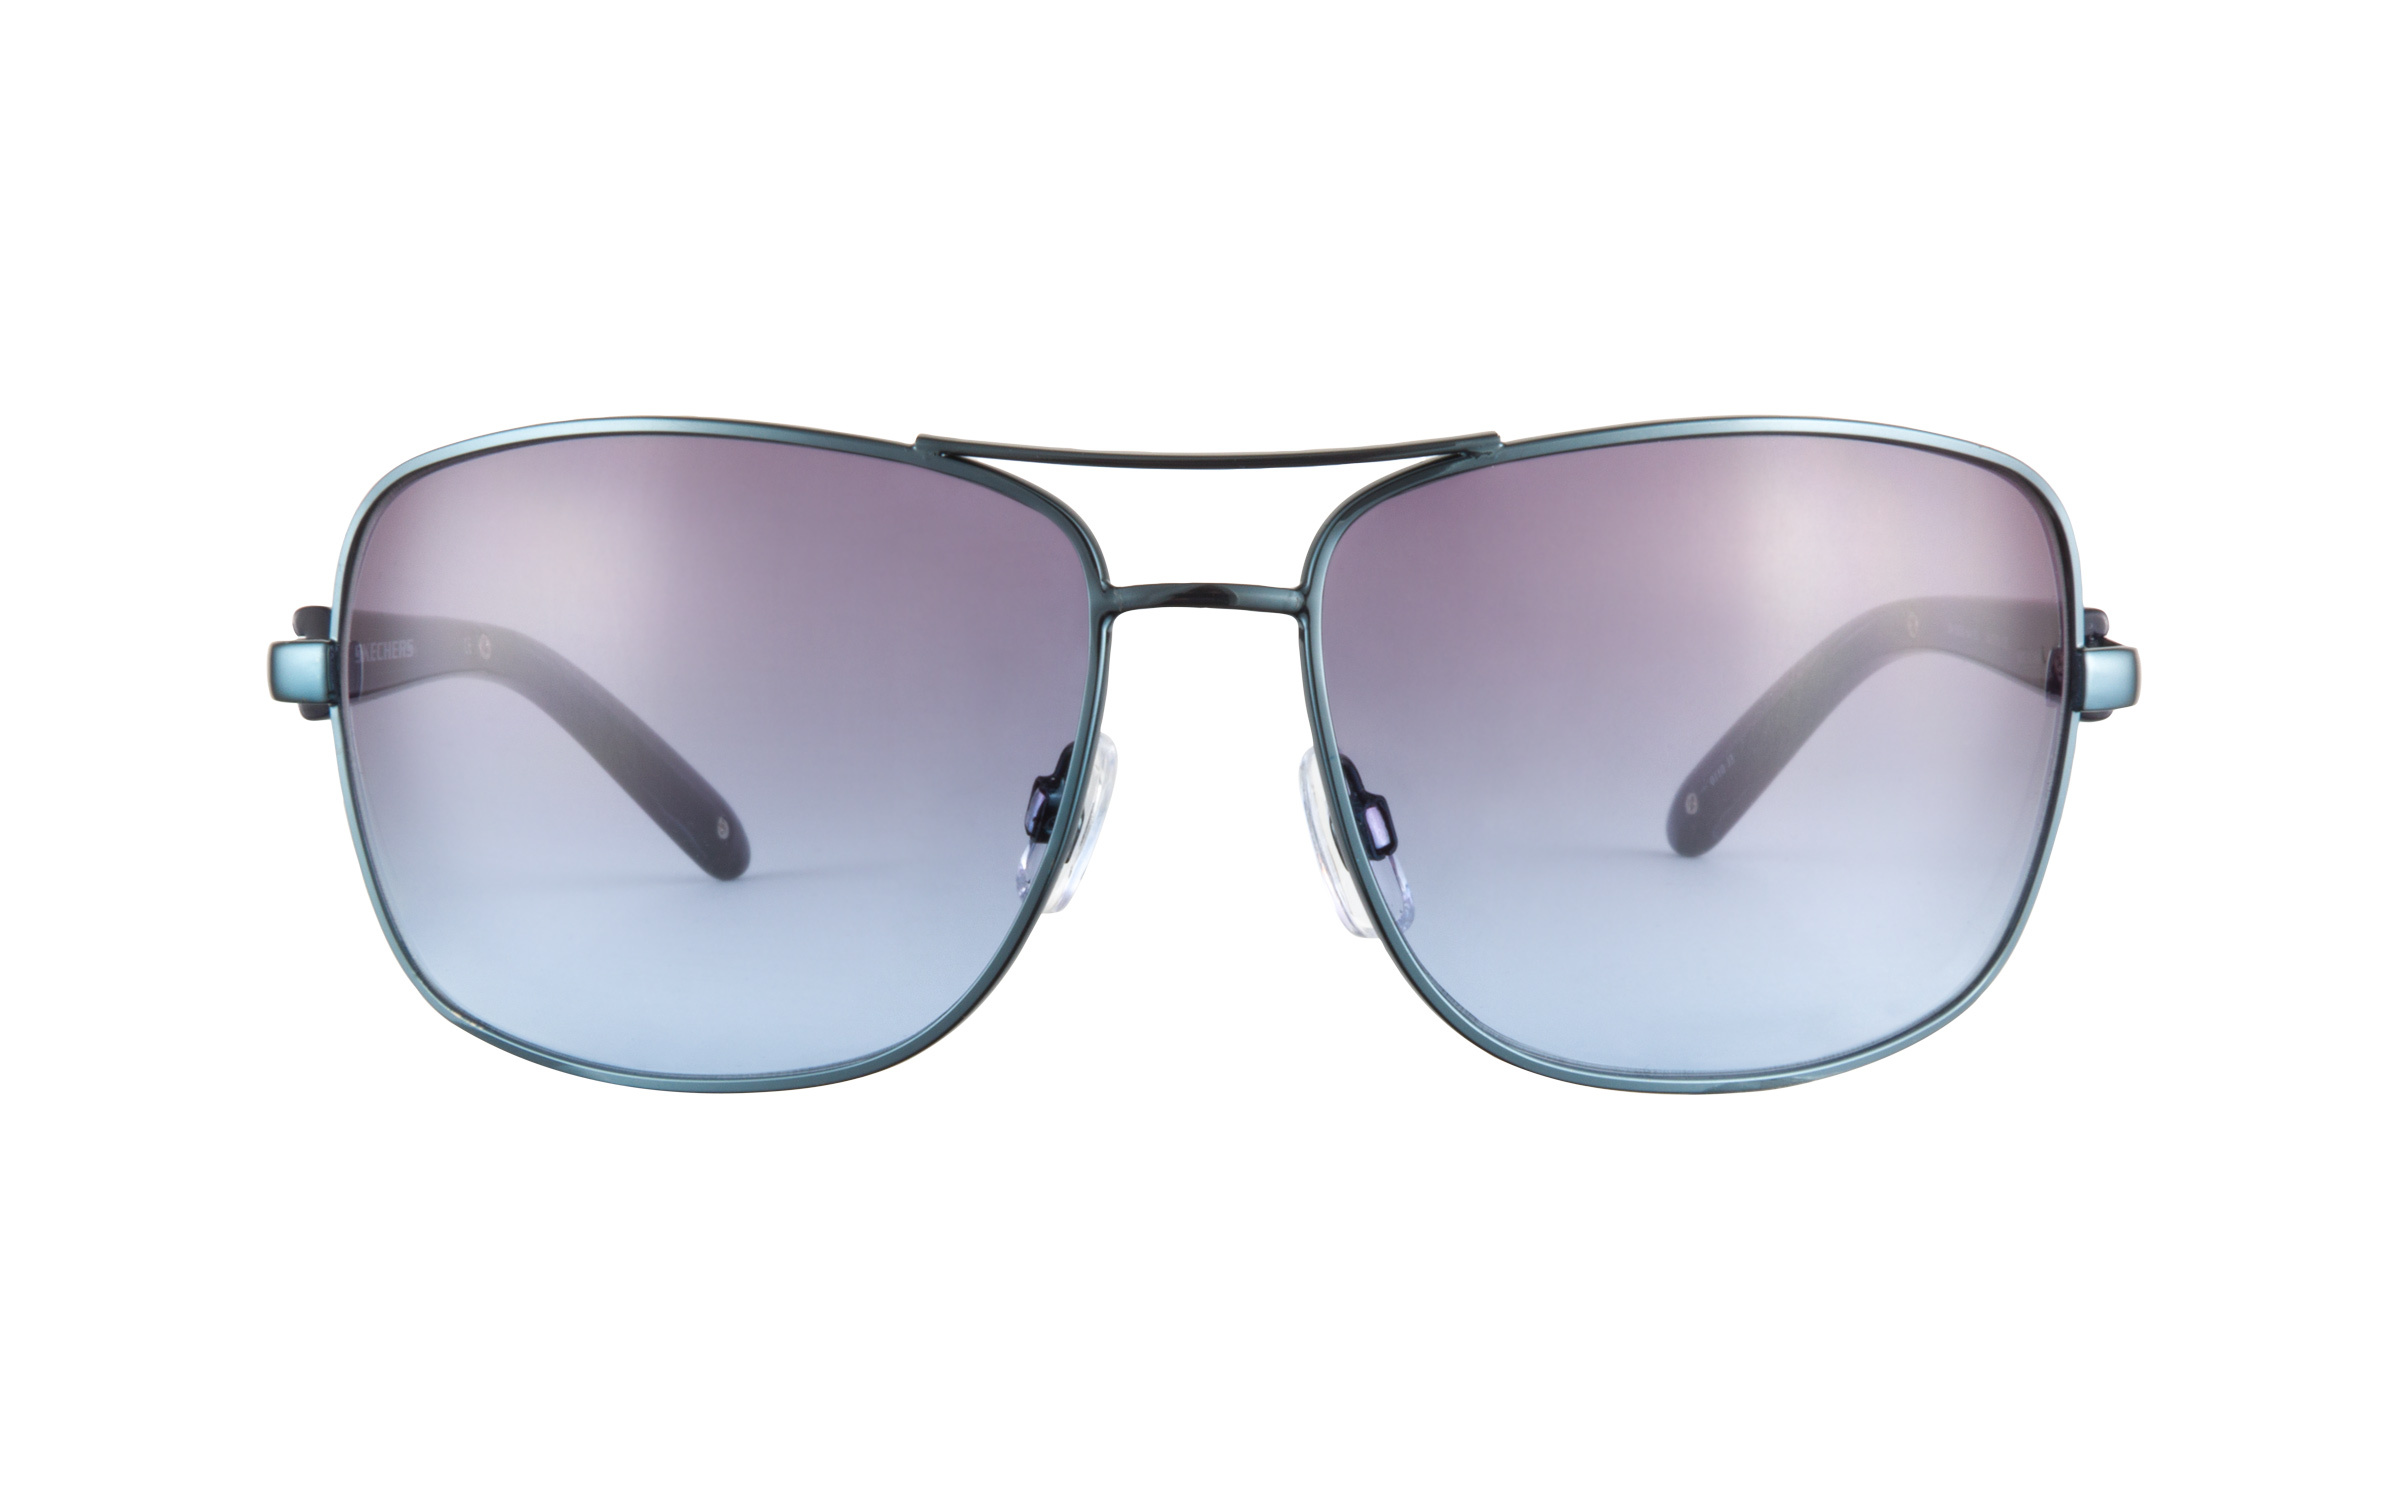 Skechers sunglasses | Compare Prices at Nextag